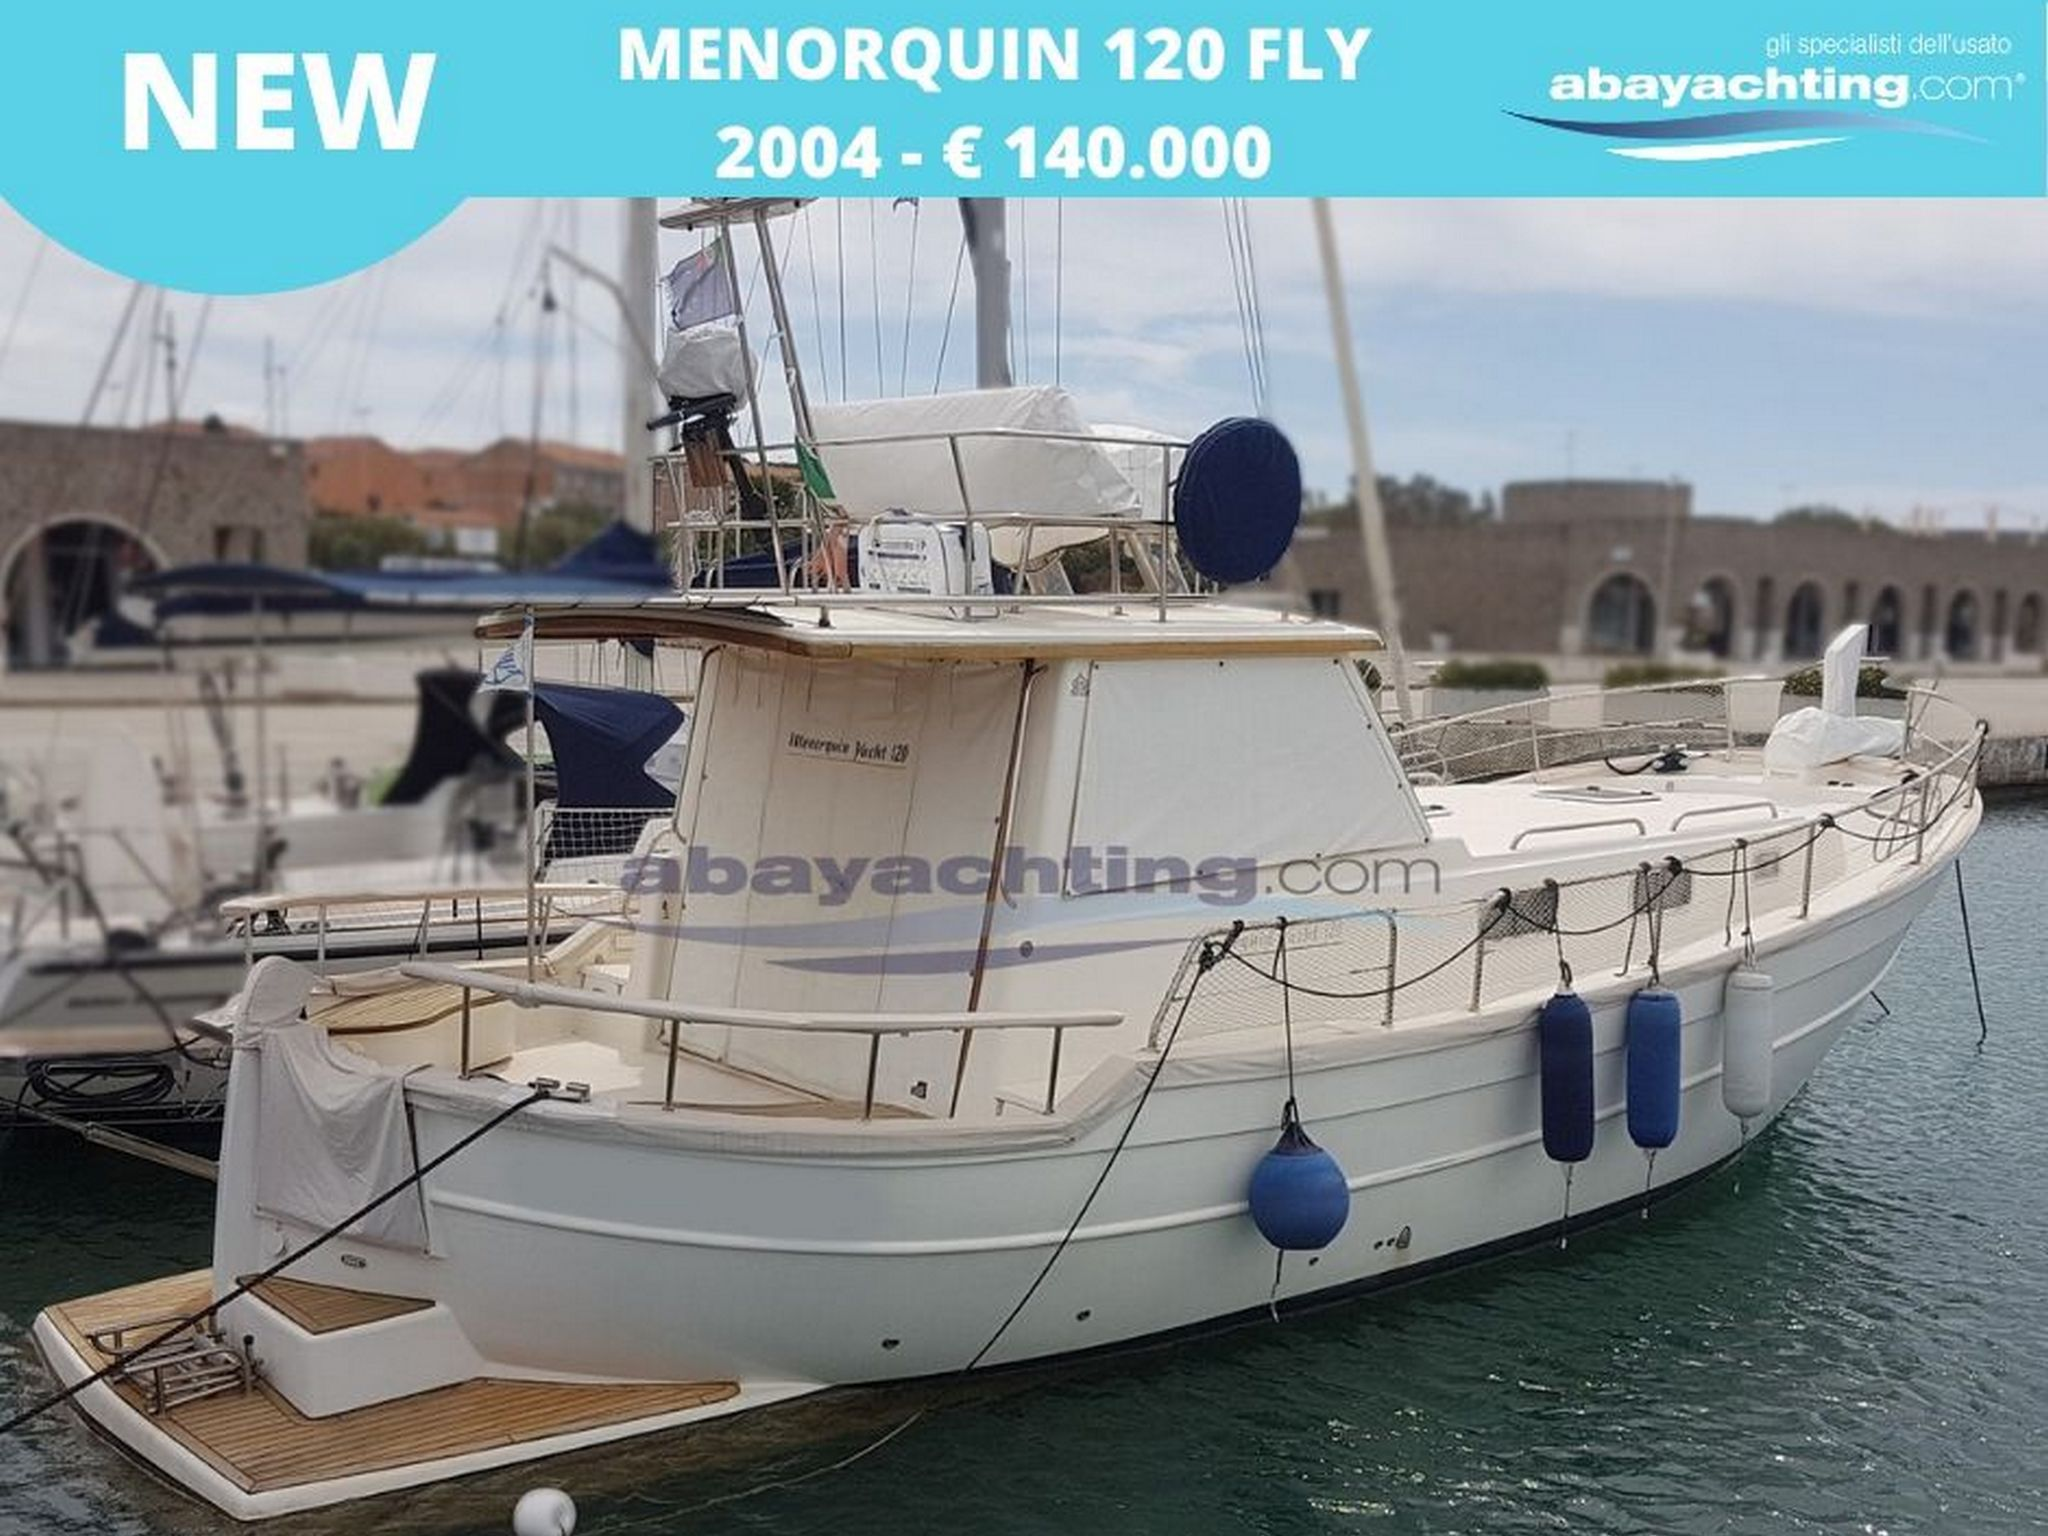 New arrival Menorquin 120 Fly